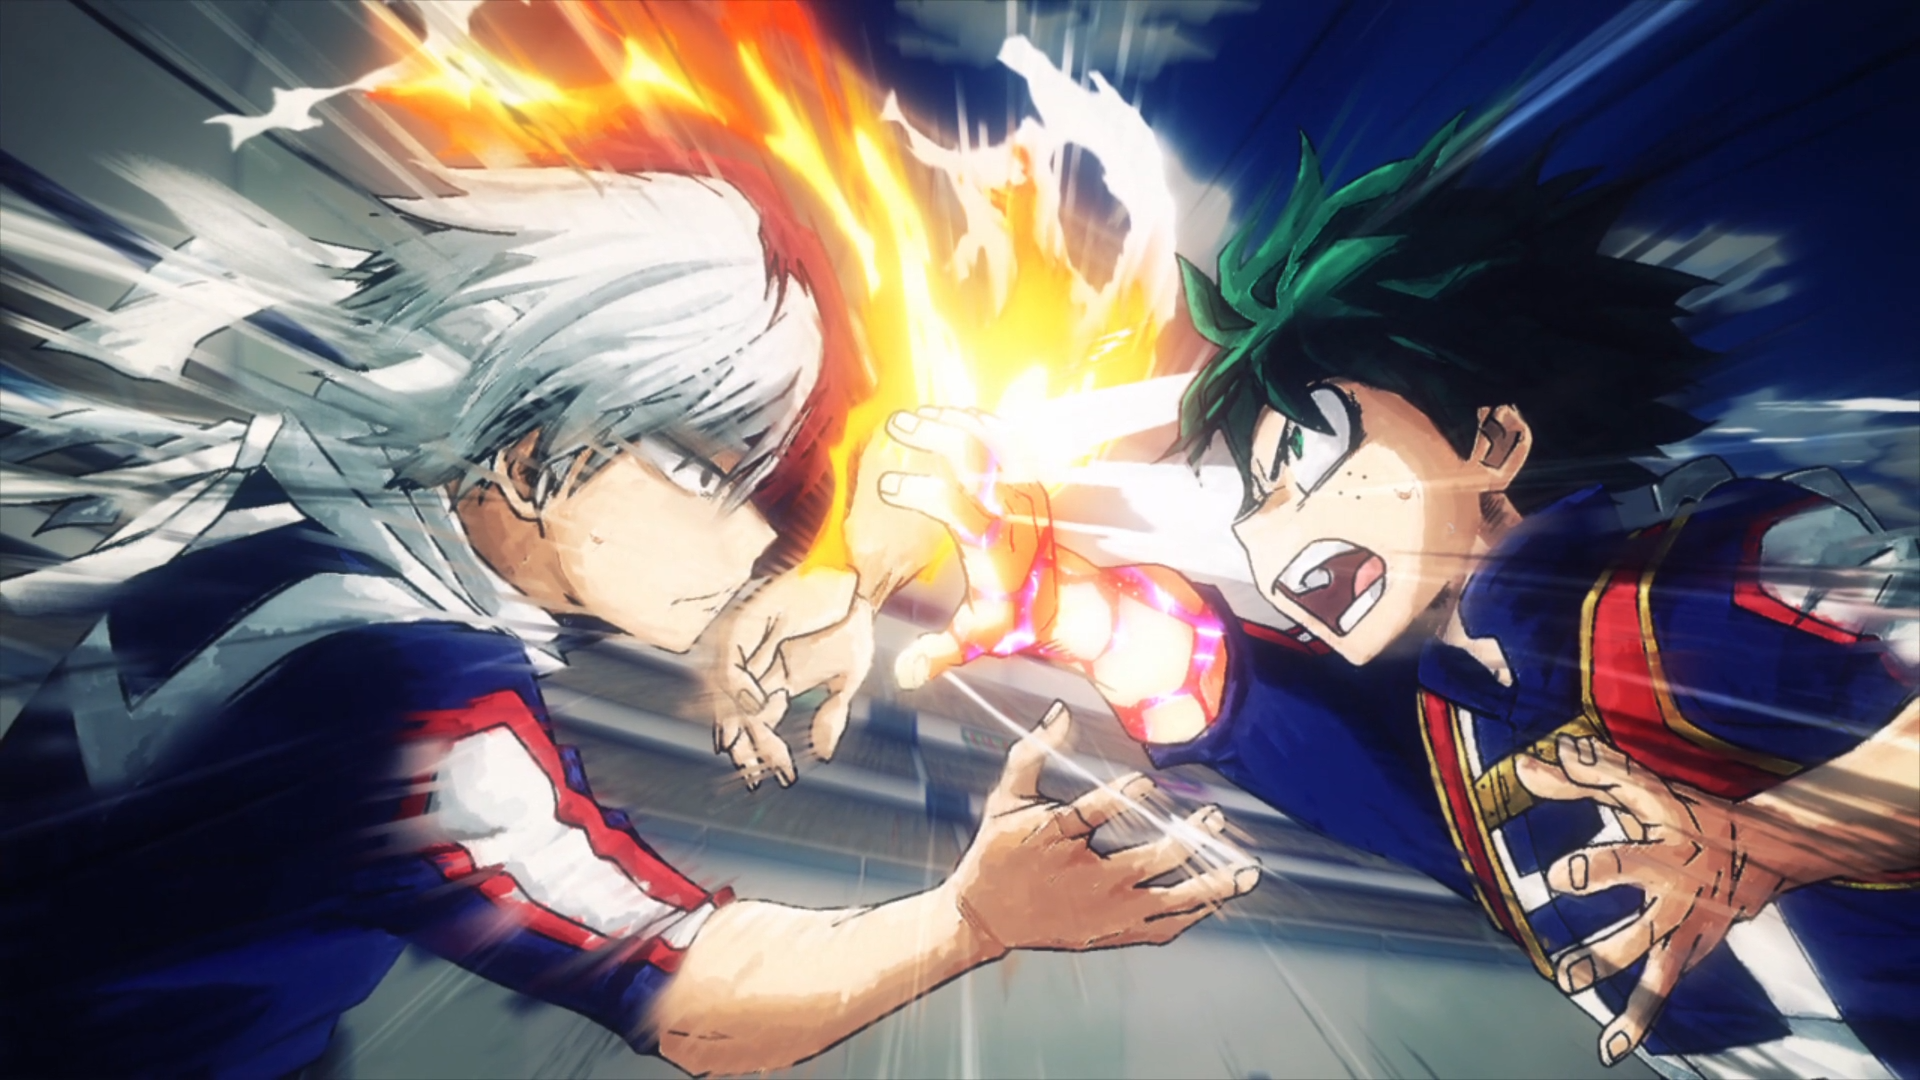 izuku vs shoto hd wallpaper